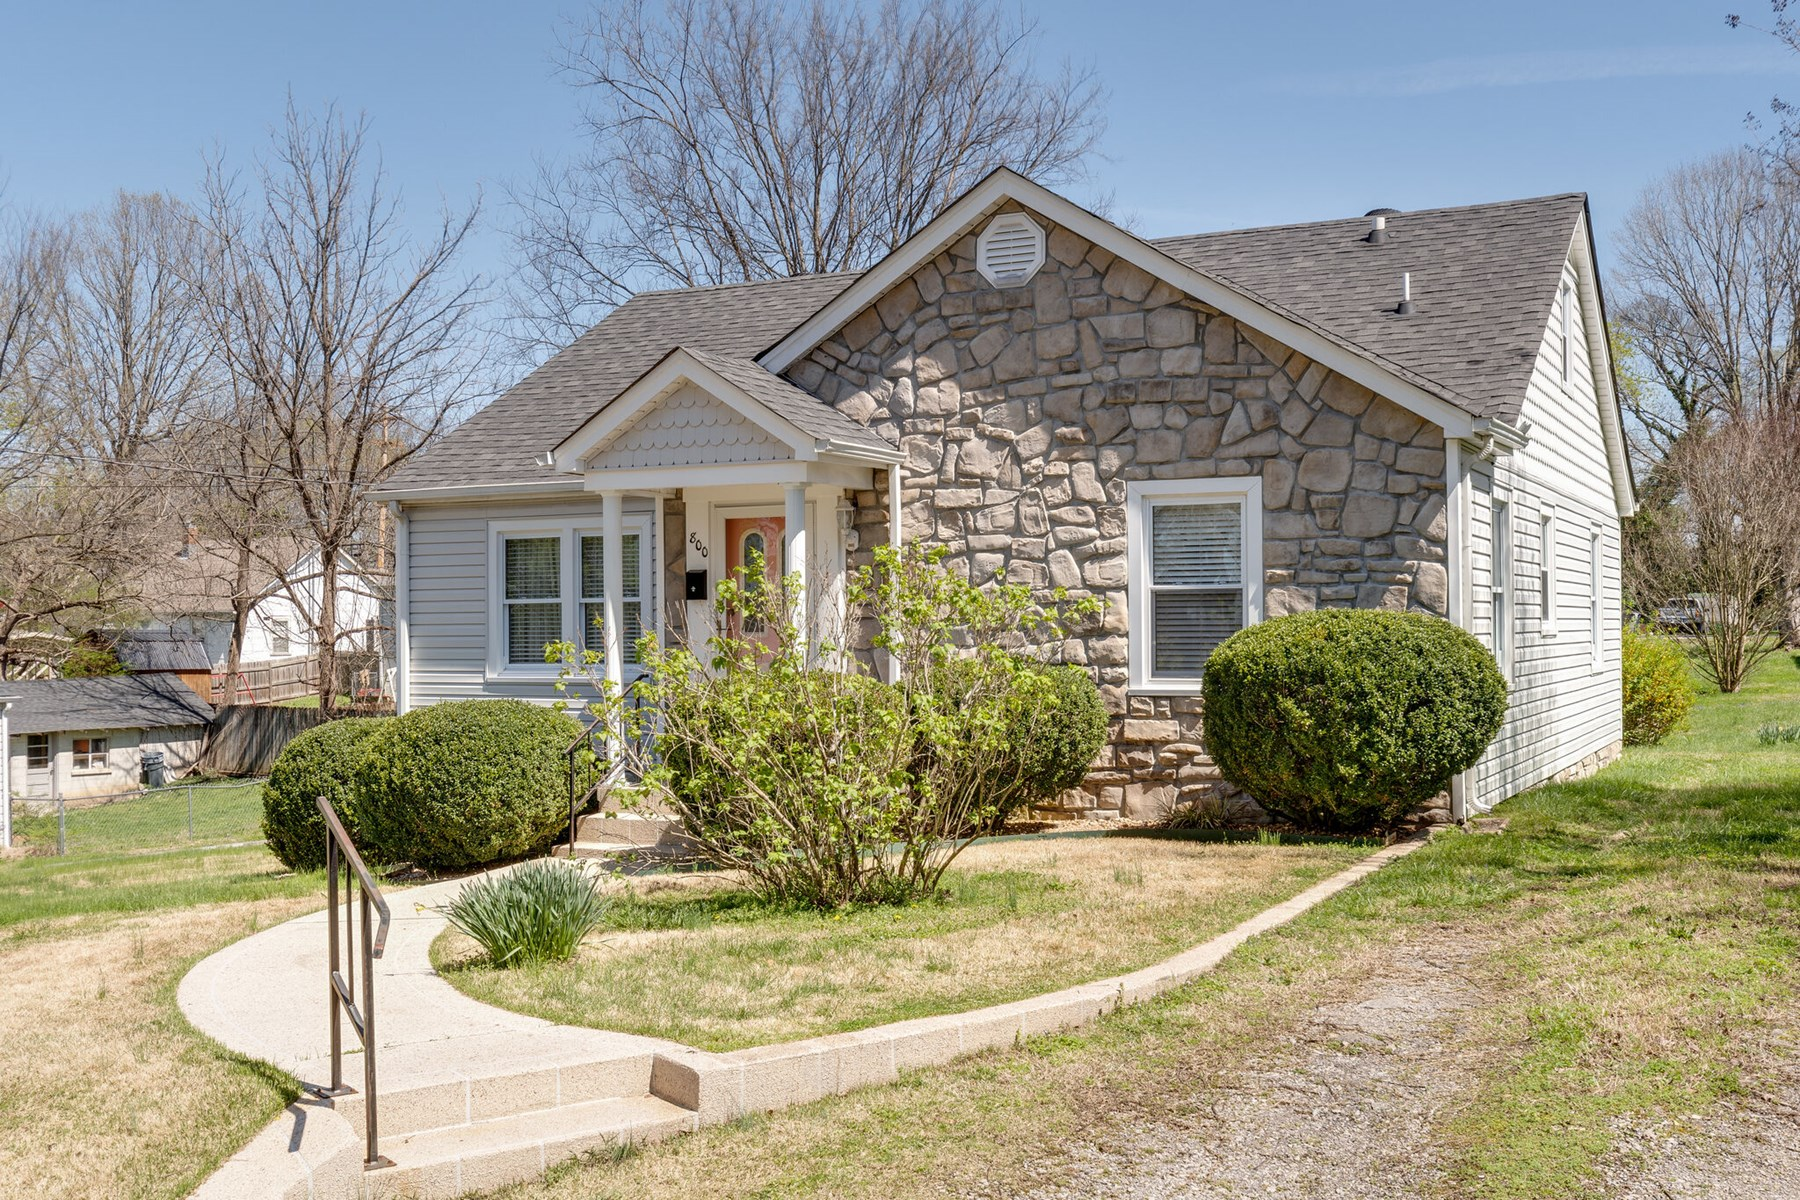 Cottage Home in Town for Sale in Columbia, Tennessee